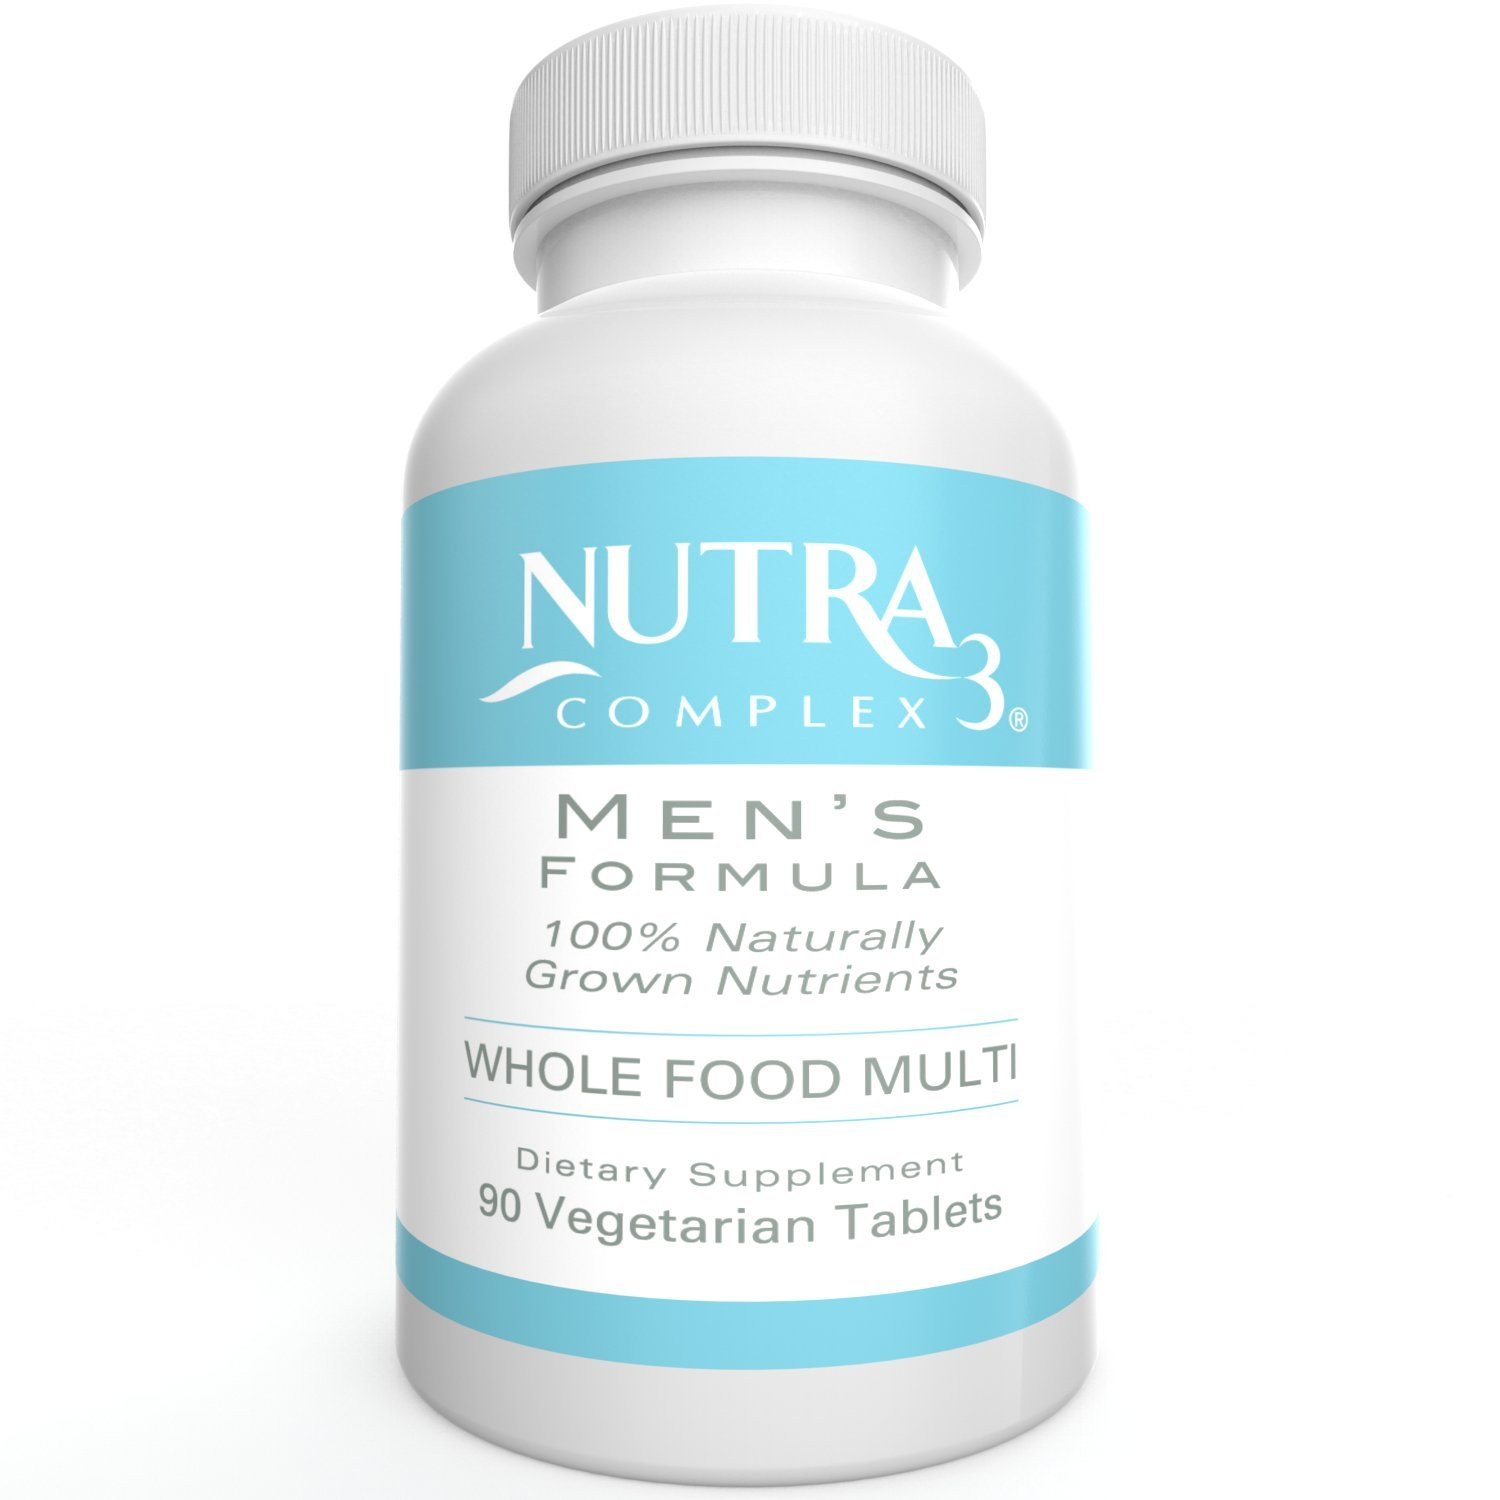 Wholefood Multivitamin for Men Naturally Grown Veggie Tablets Gluten Free Whole Food Multivitamin 90 Veggie Tablets 1 Month Supply